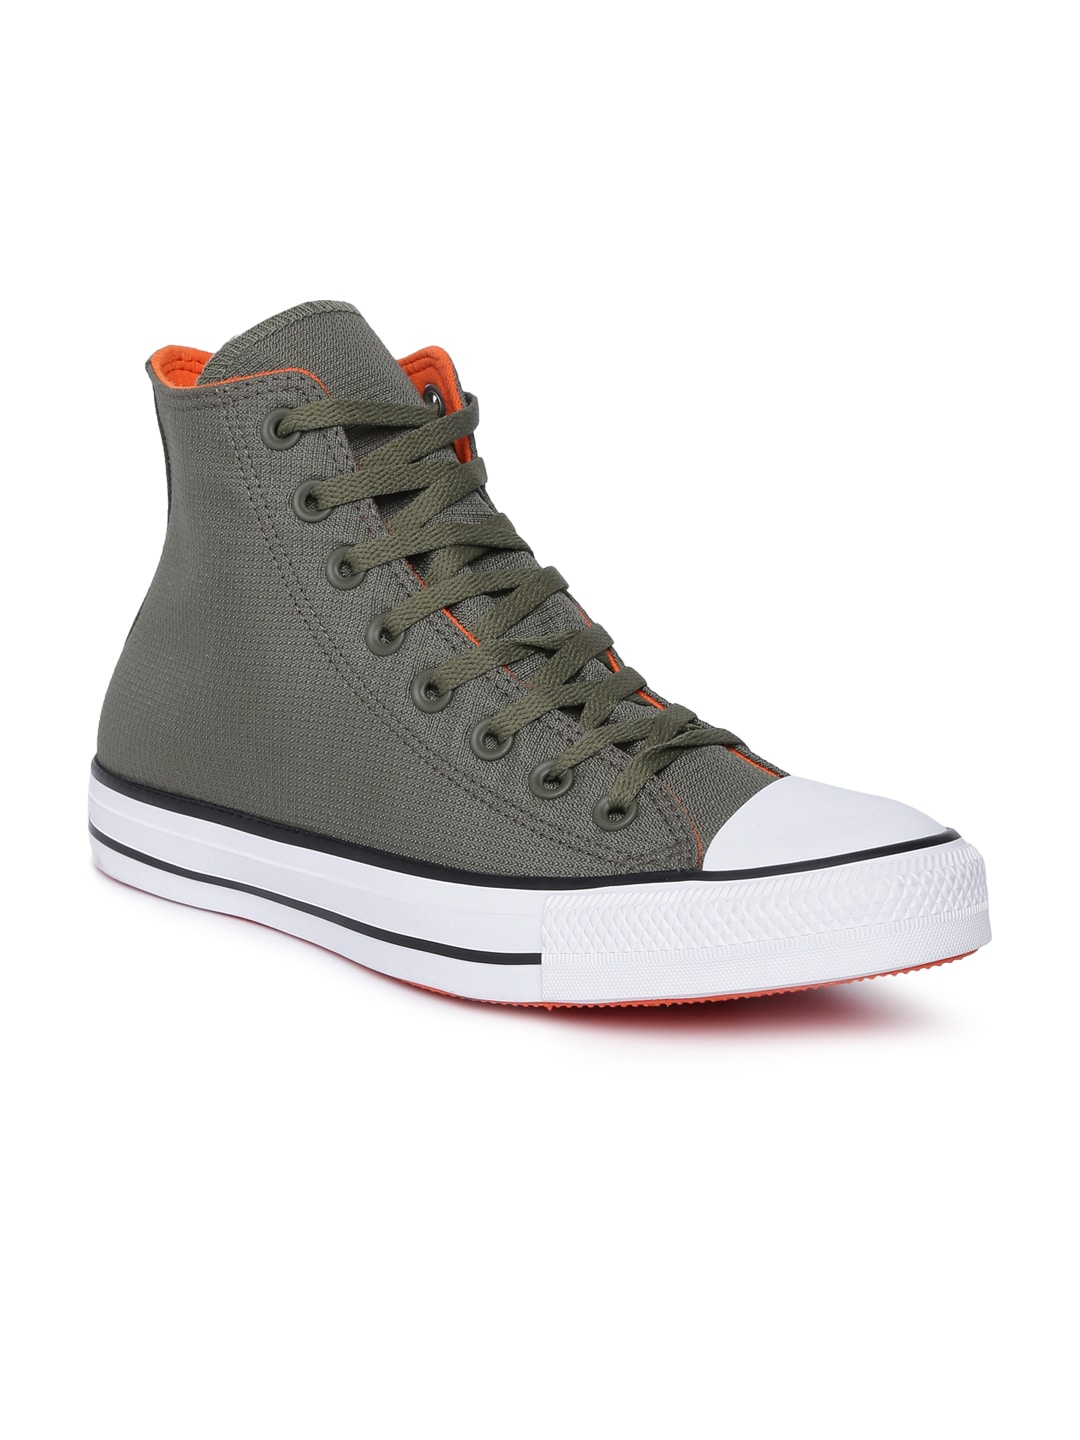 cdf52abbcaae Converse Shoes - Buy Converse Canvas Shoes   Sneakers Online